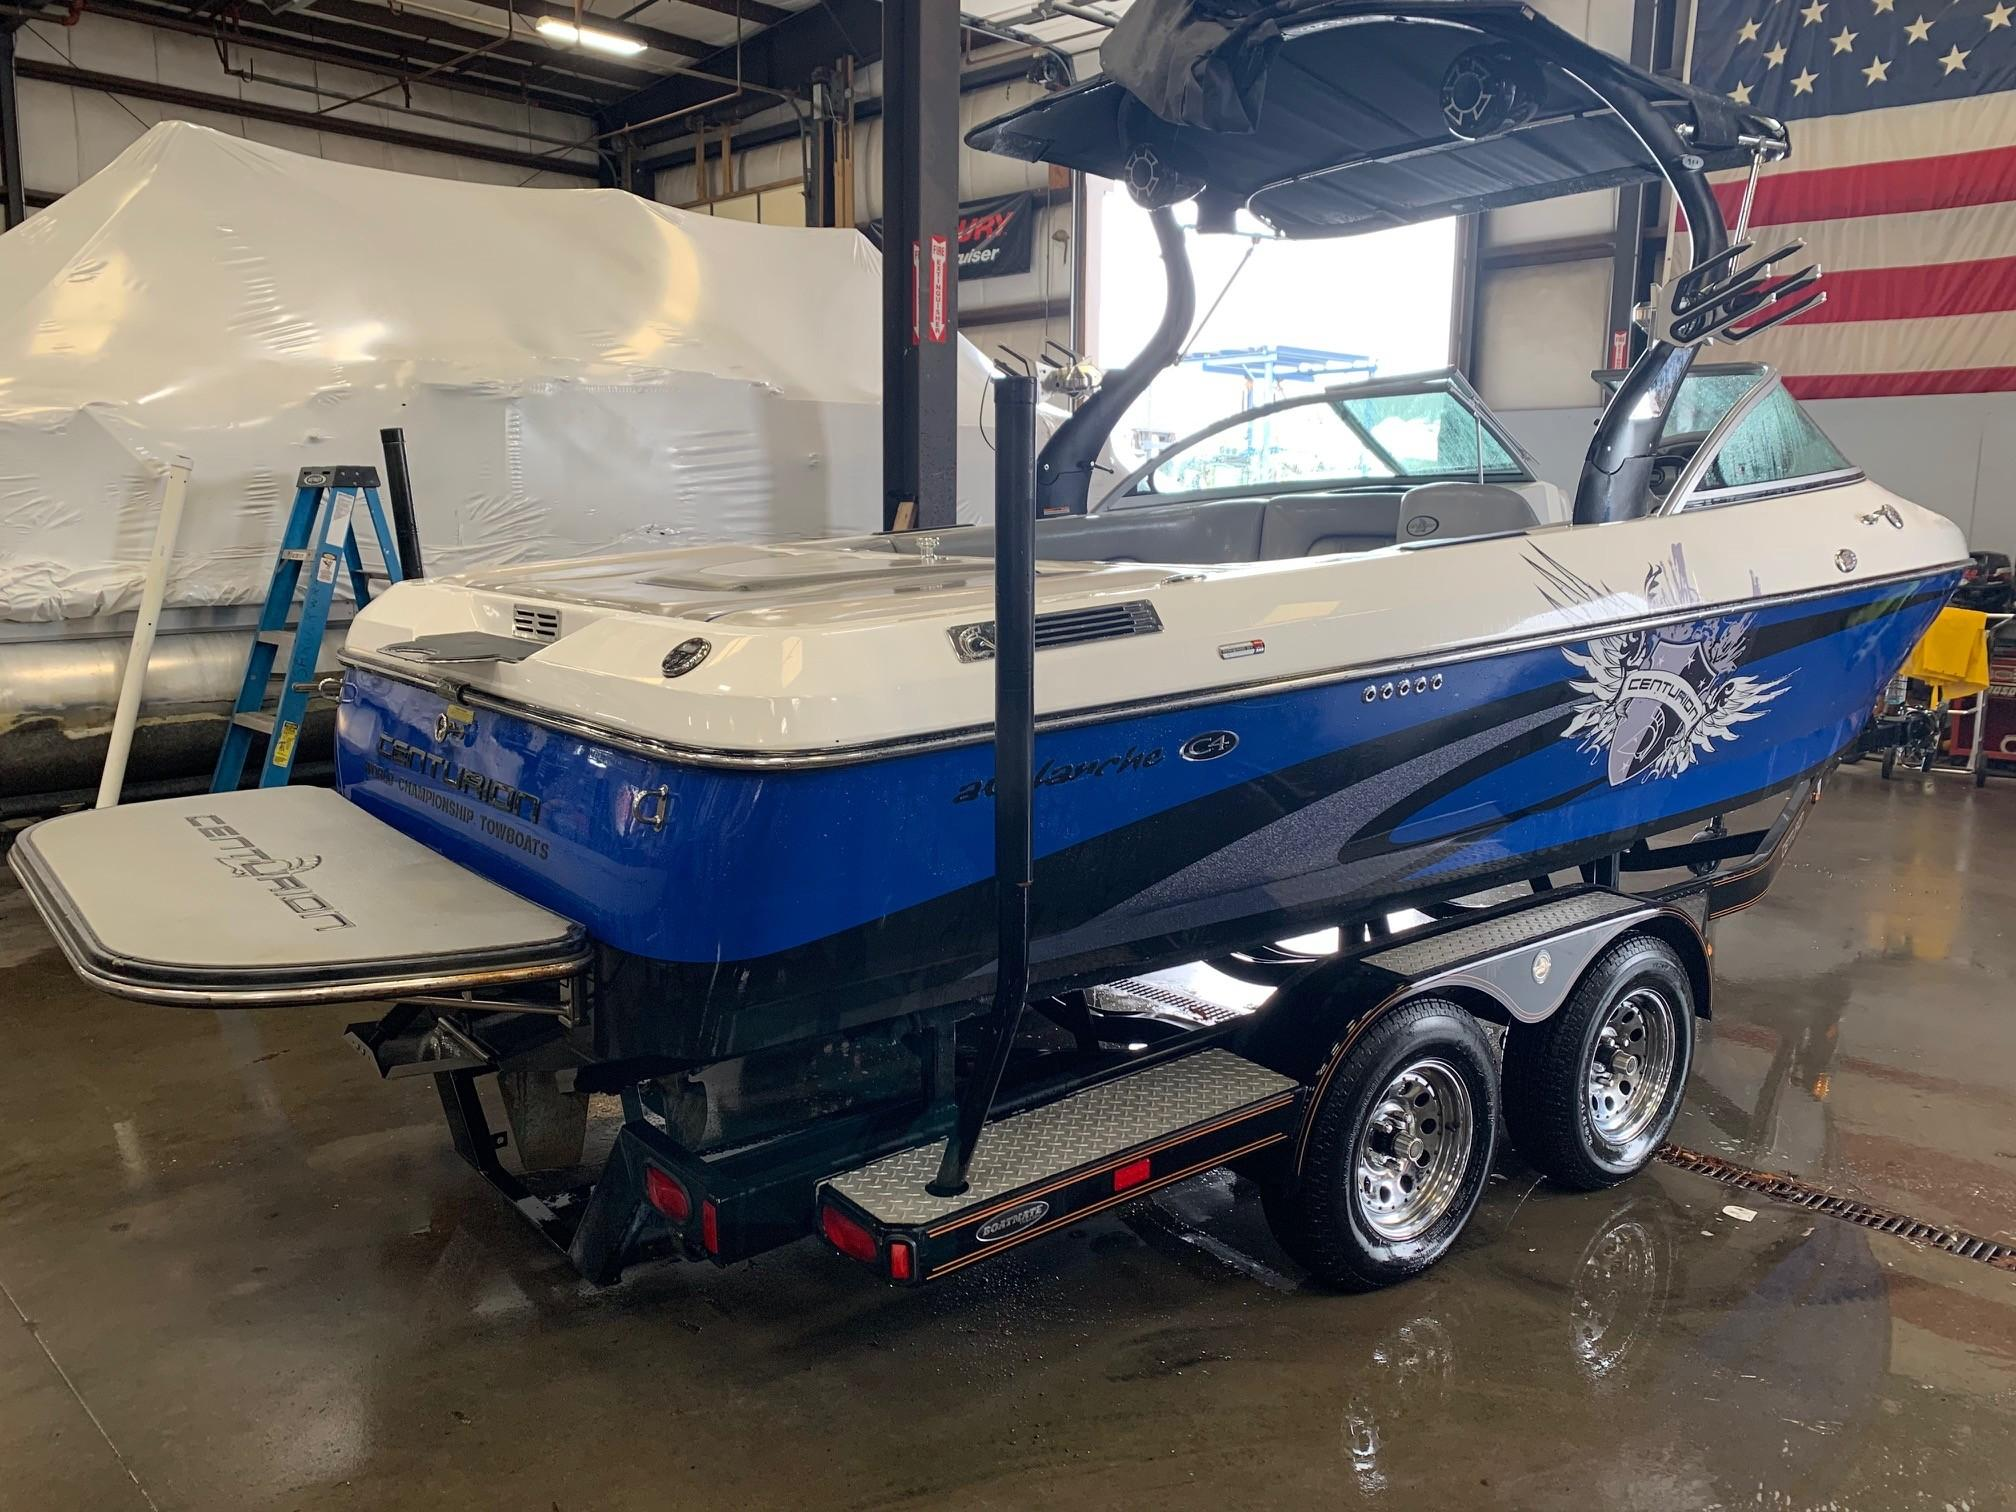 Centurion Boats For Sale >> Centurion Boats For Sale Usa Marine In United States